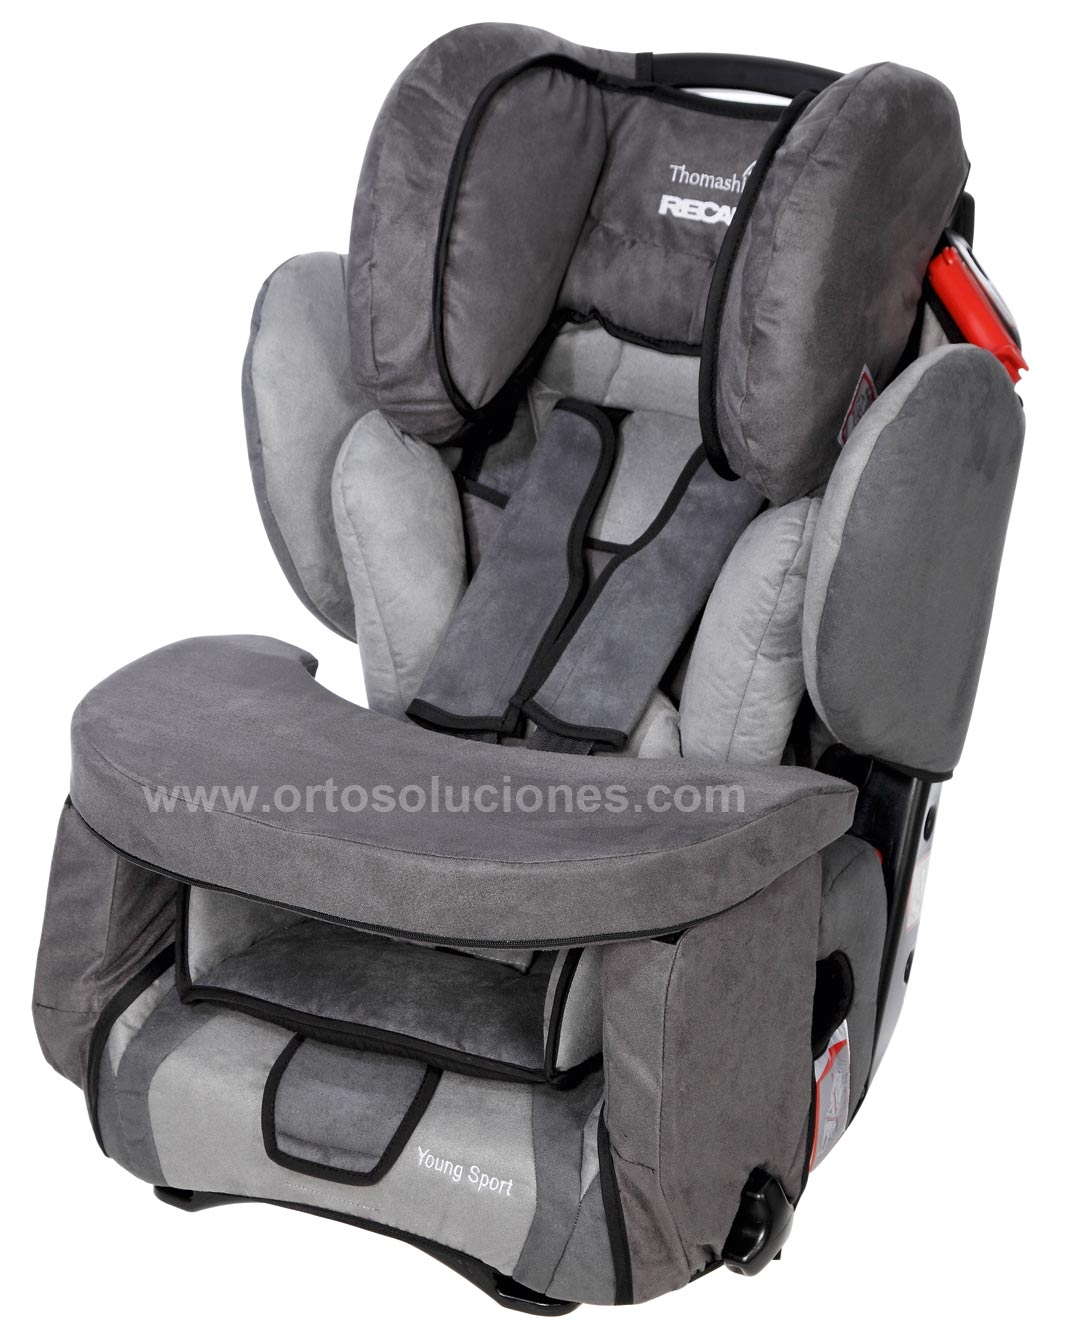 Pin fotos de asiento auto para bebe imagenes on pinterest for Asientos para bebes para autos